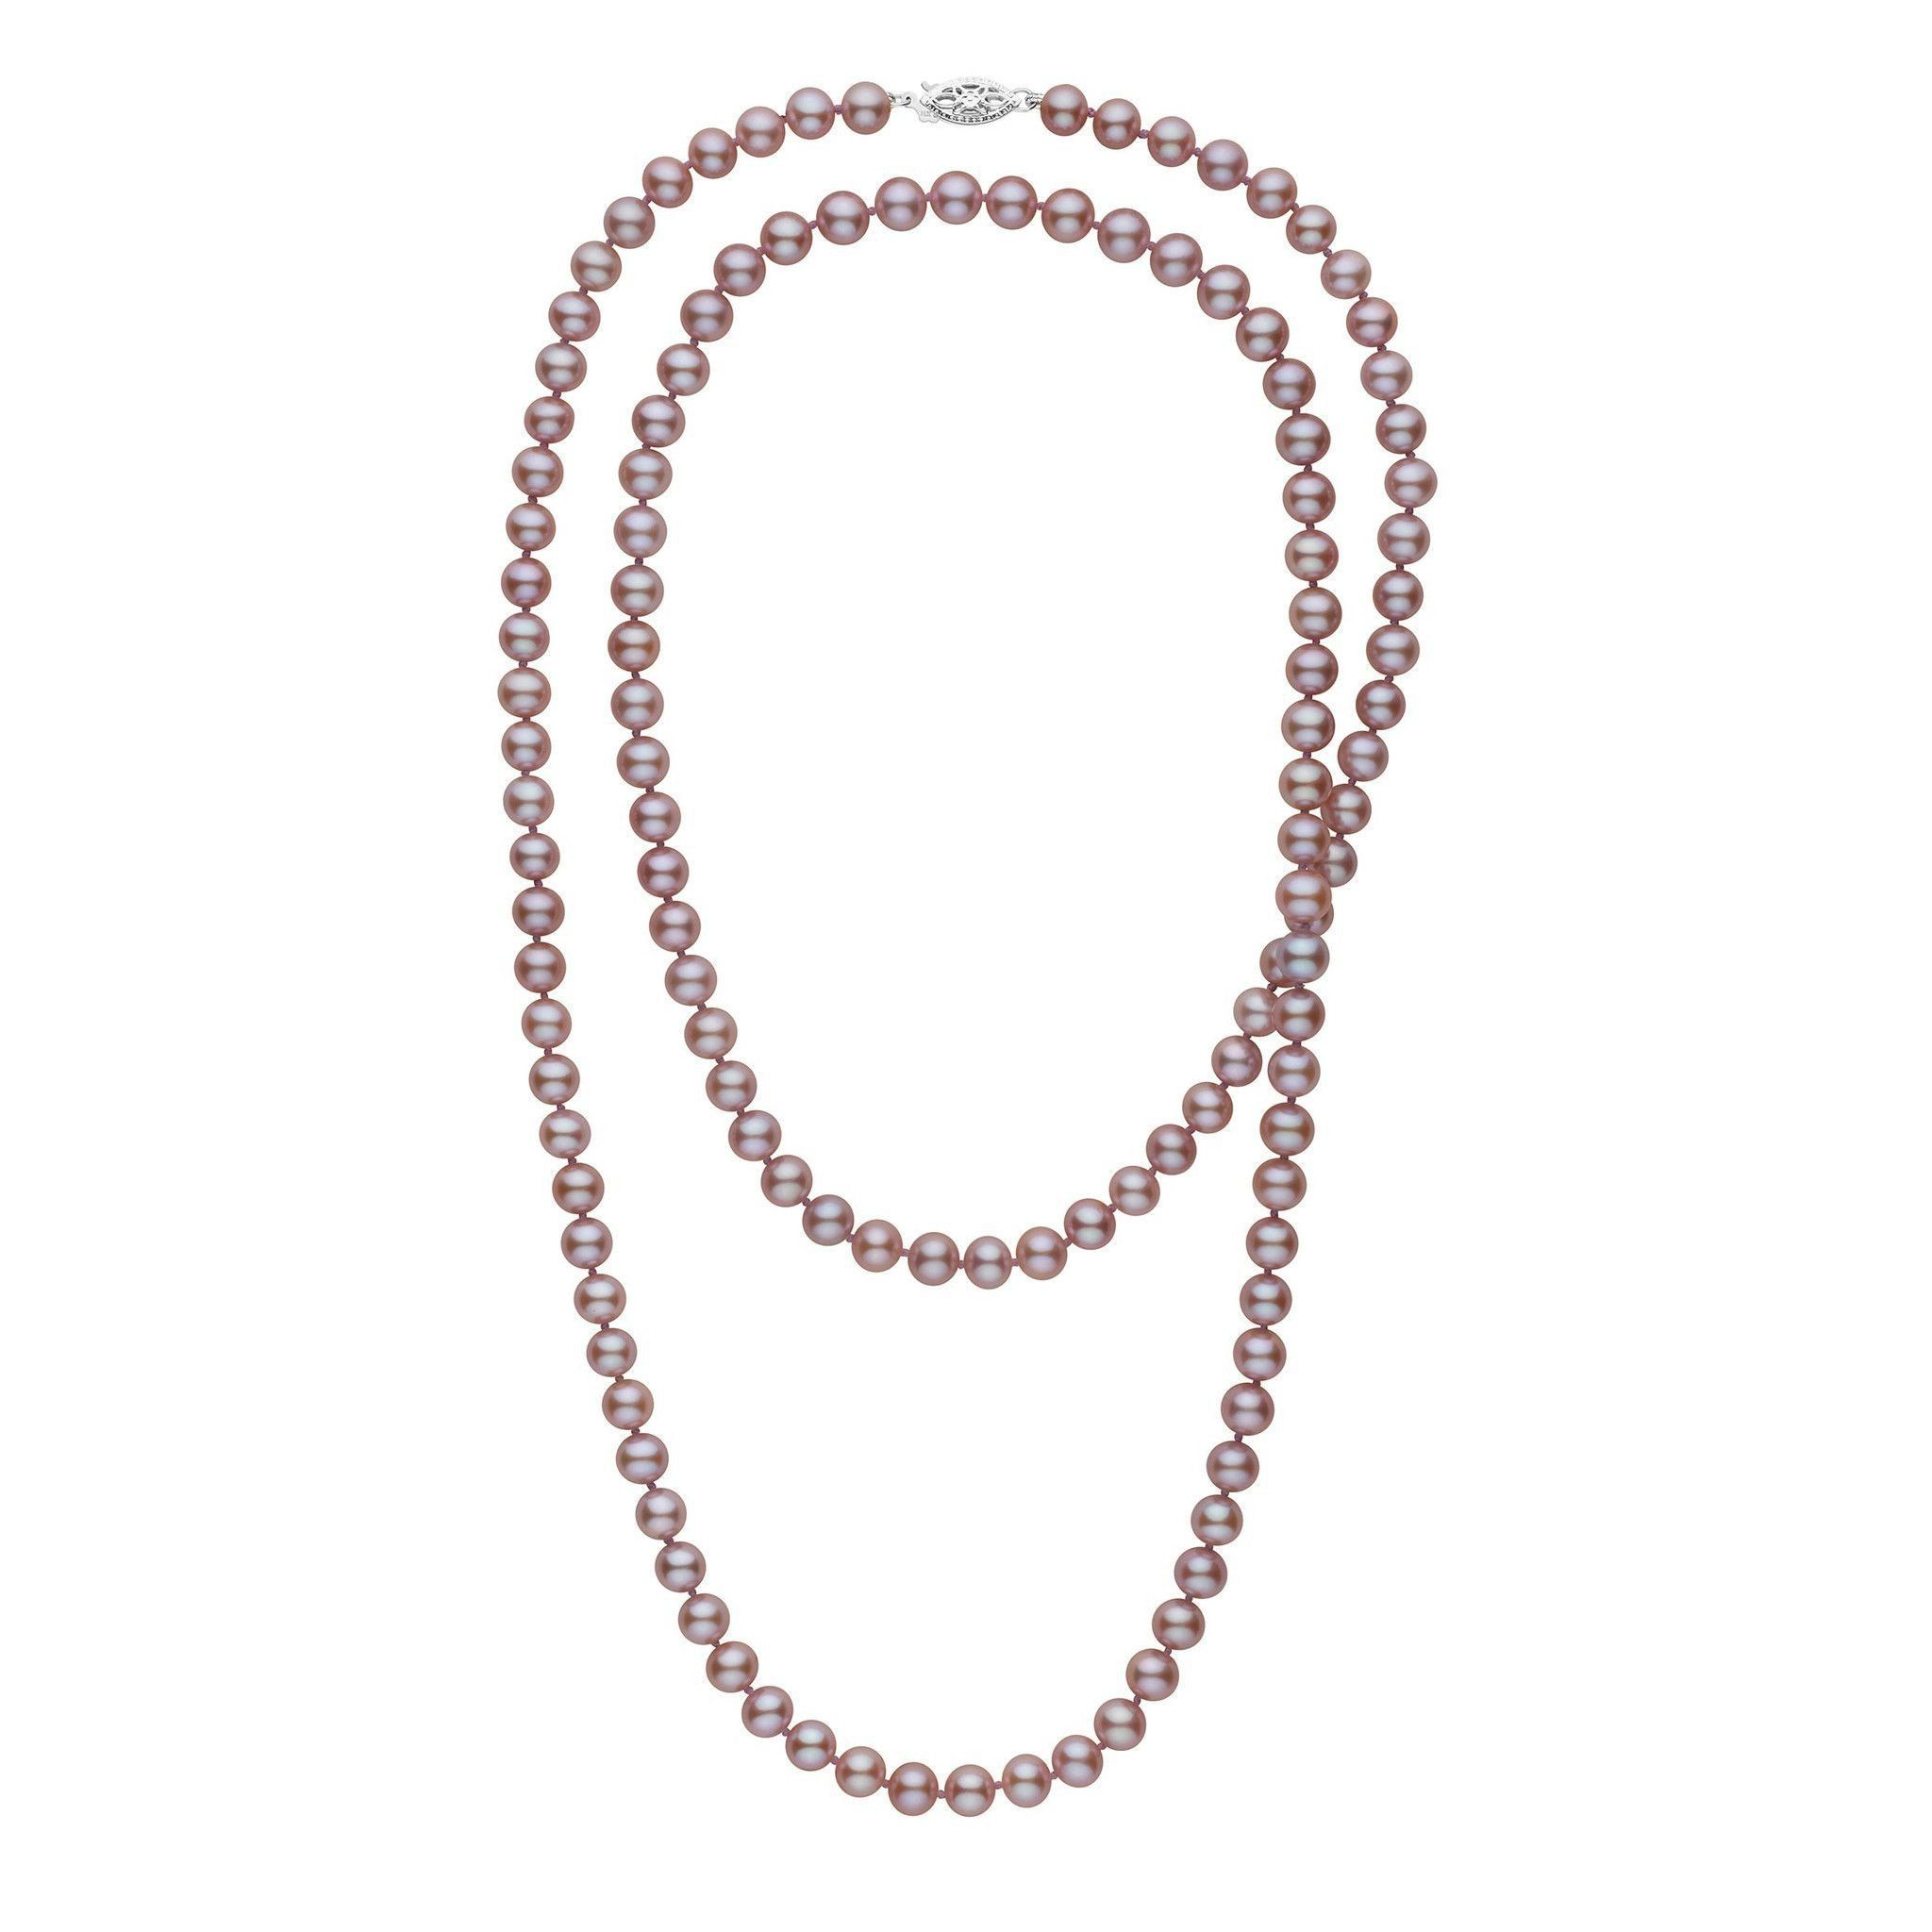 35-inch 6.5-7.0 mm AAA Lavender Freshwater Pearl Necklace